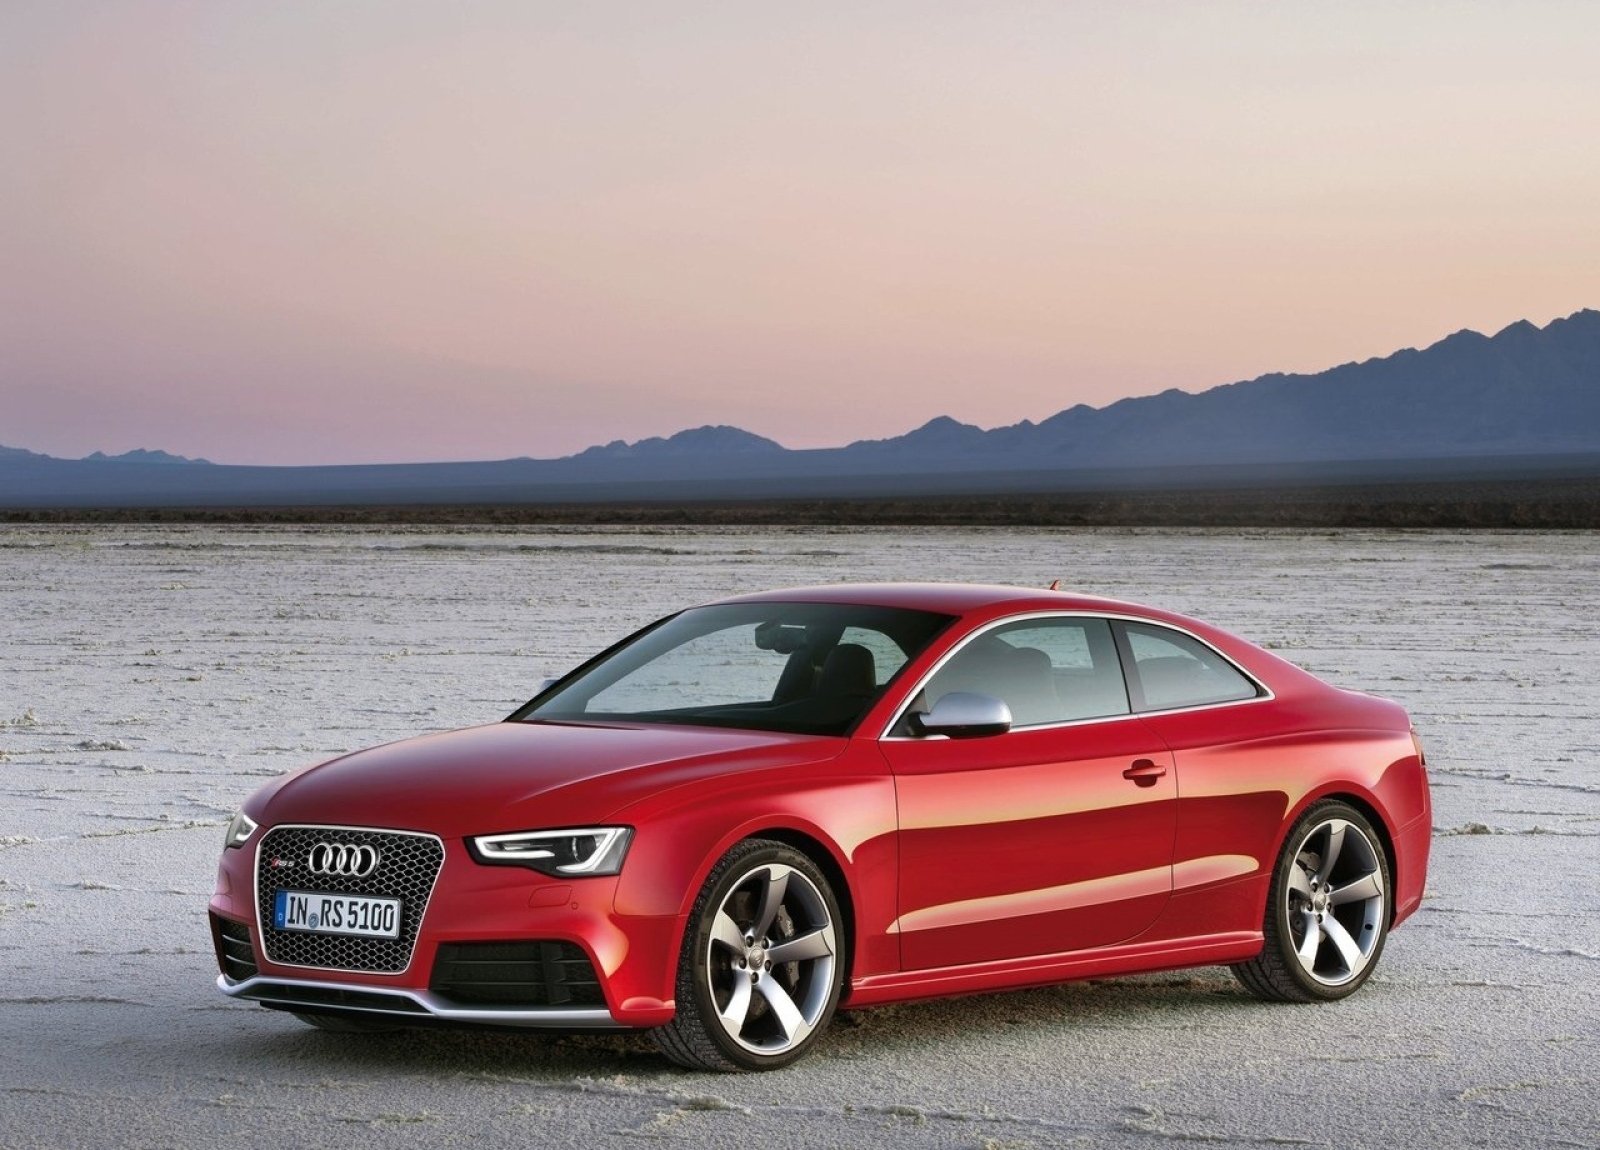 Audi RS5 HD Wallpapers | The World of Audi